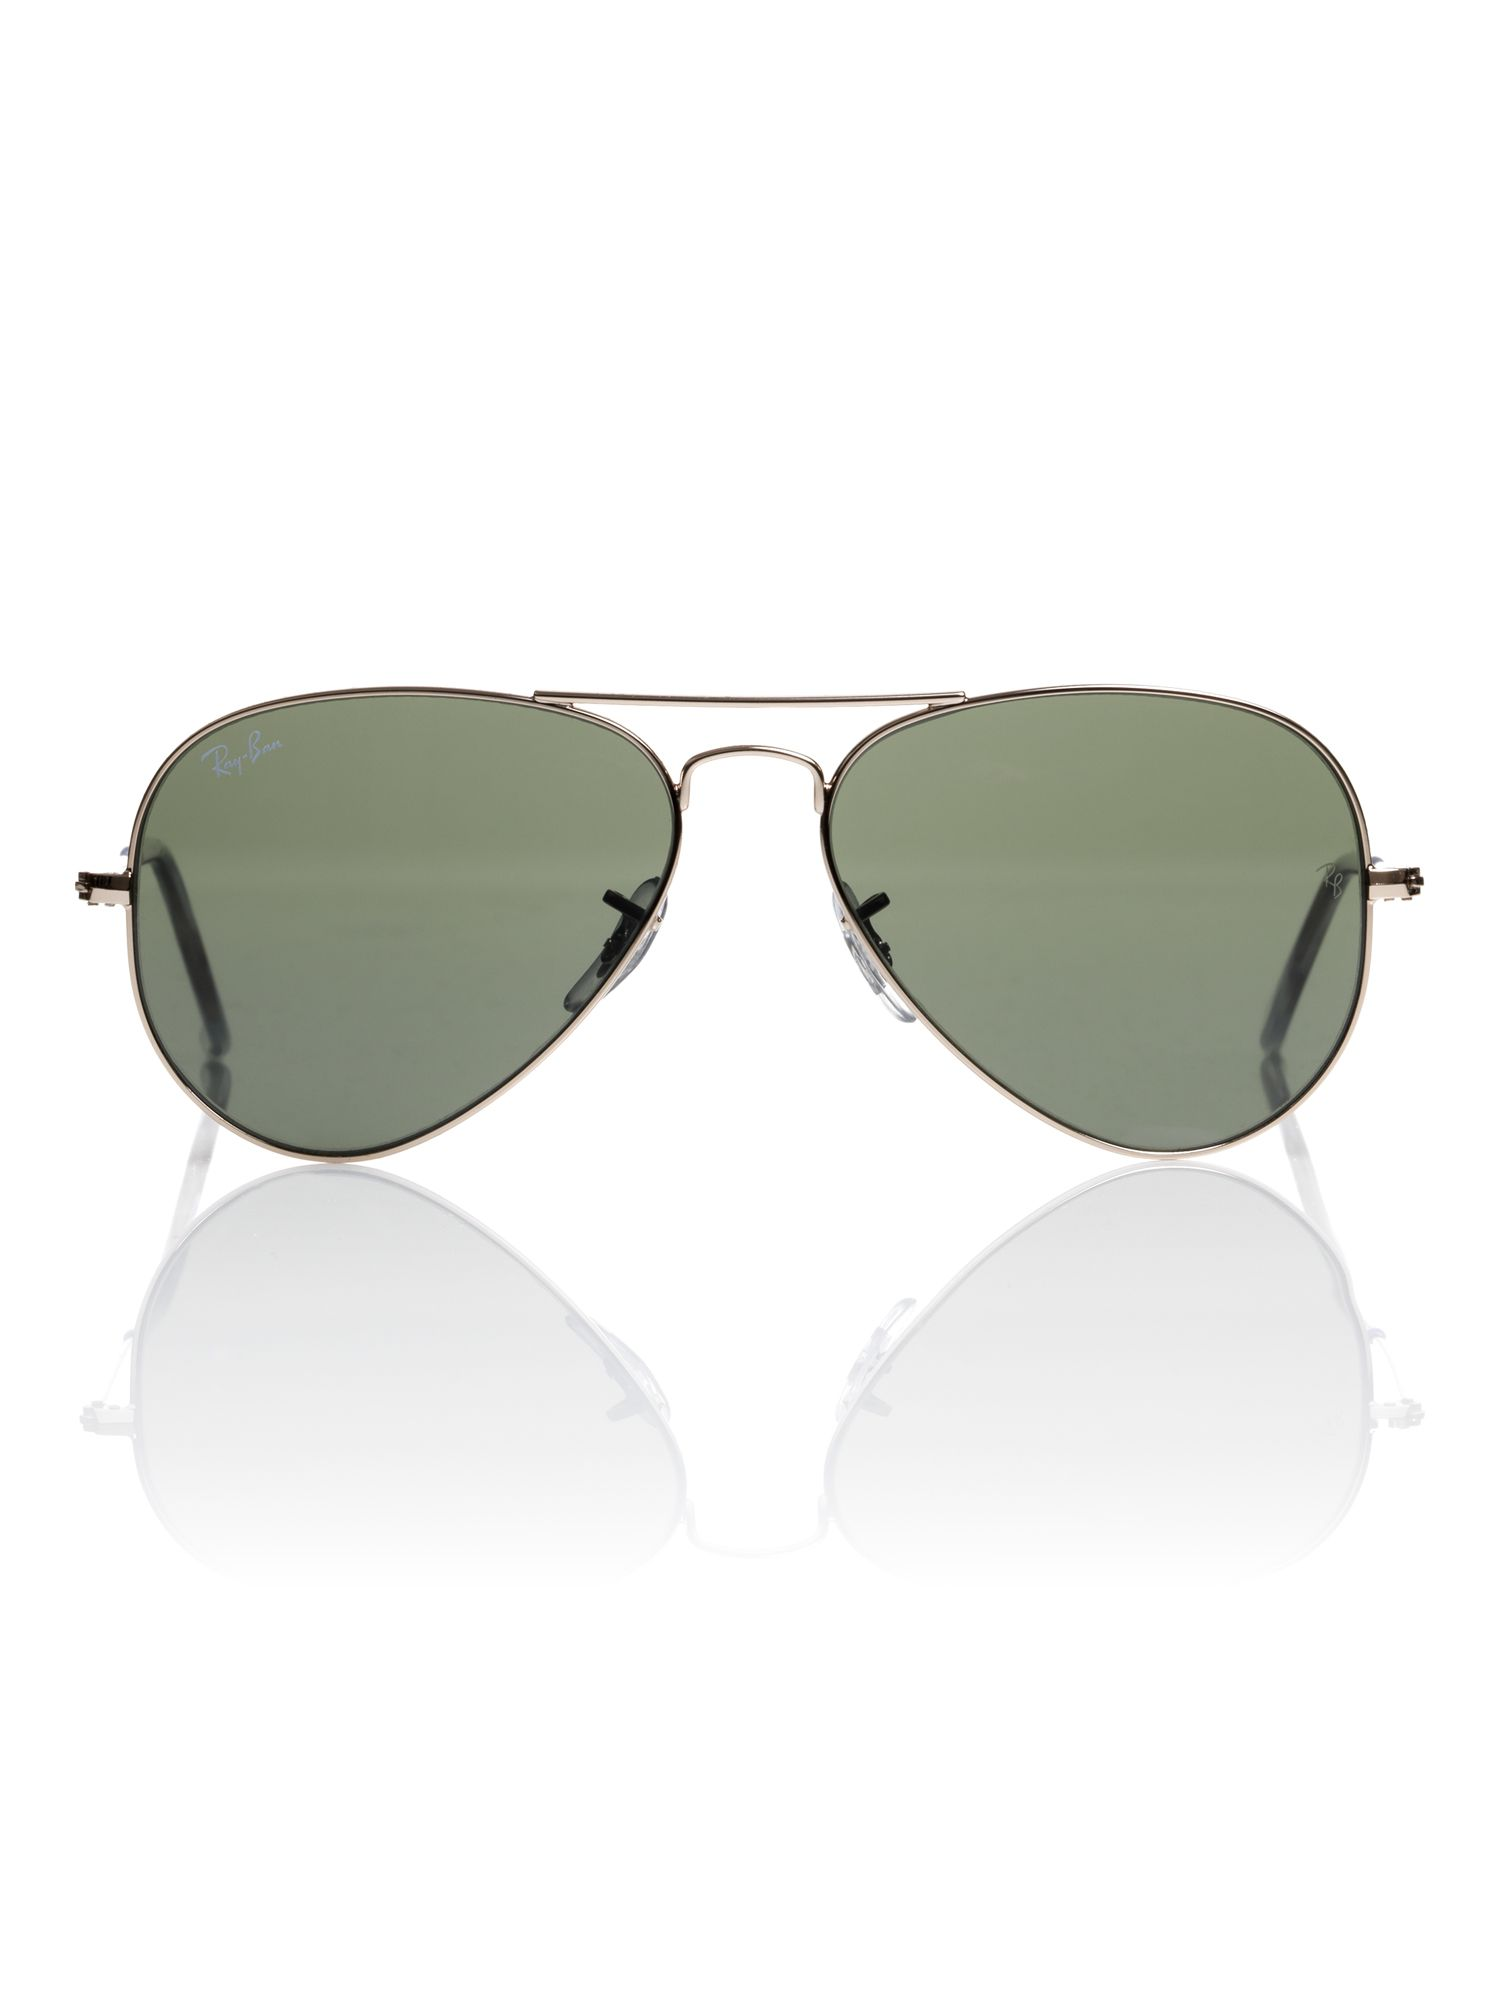 Unisex RB3025 W3234 Metal Aviator Sunglasses